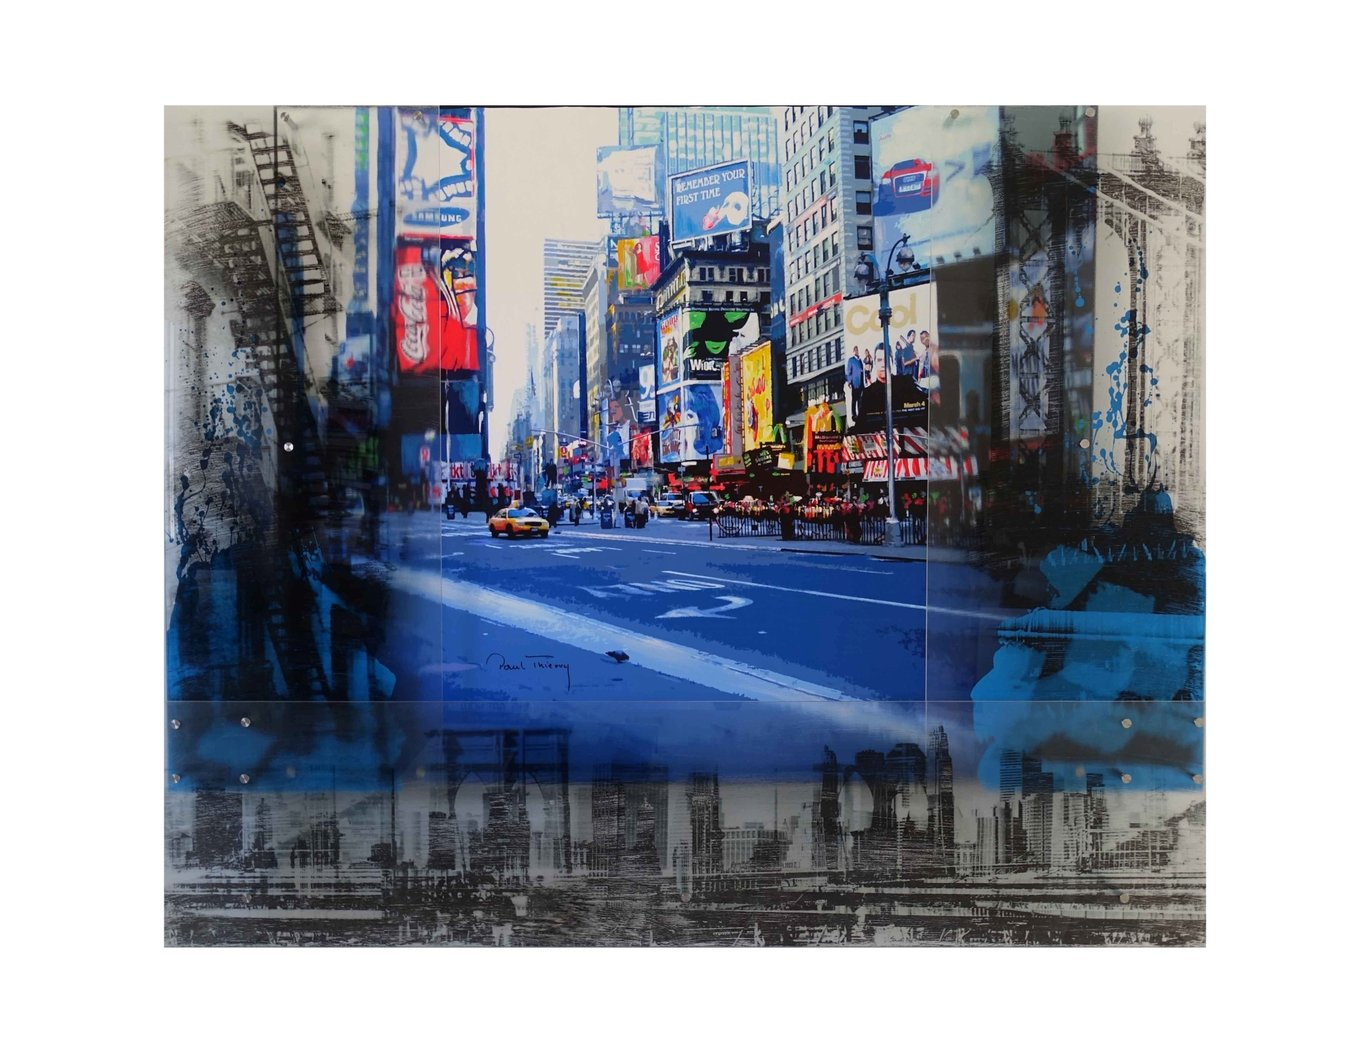 Paul Thierry - New York - Times Square